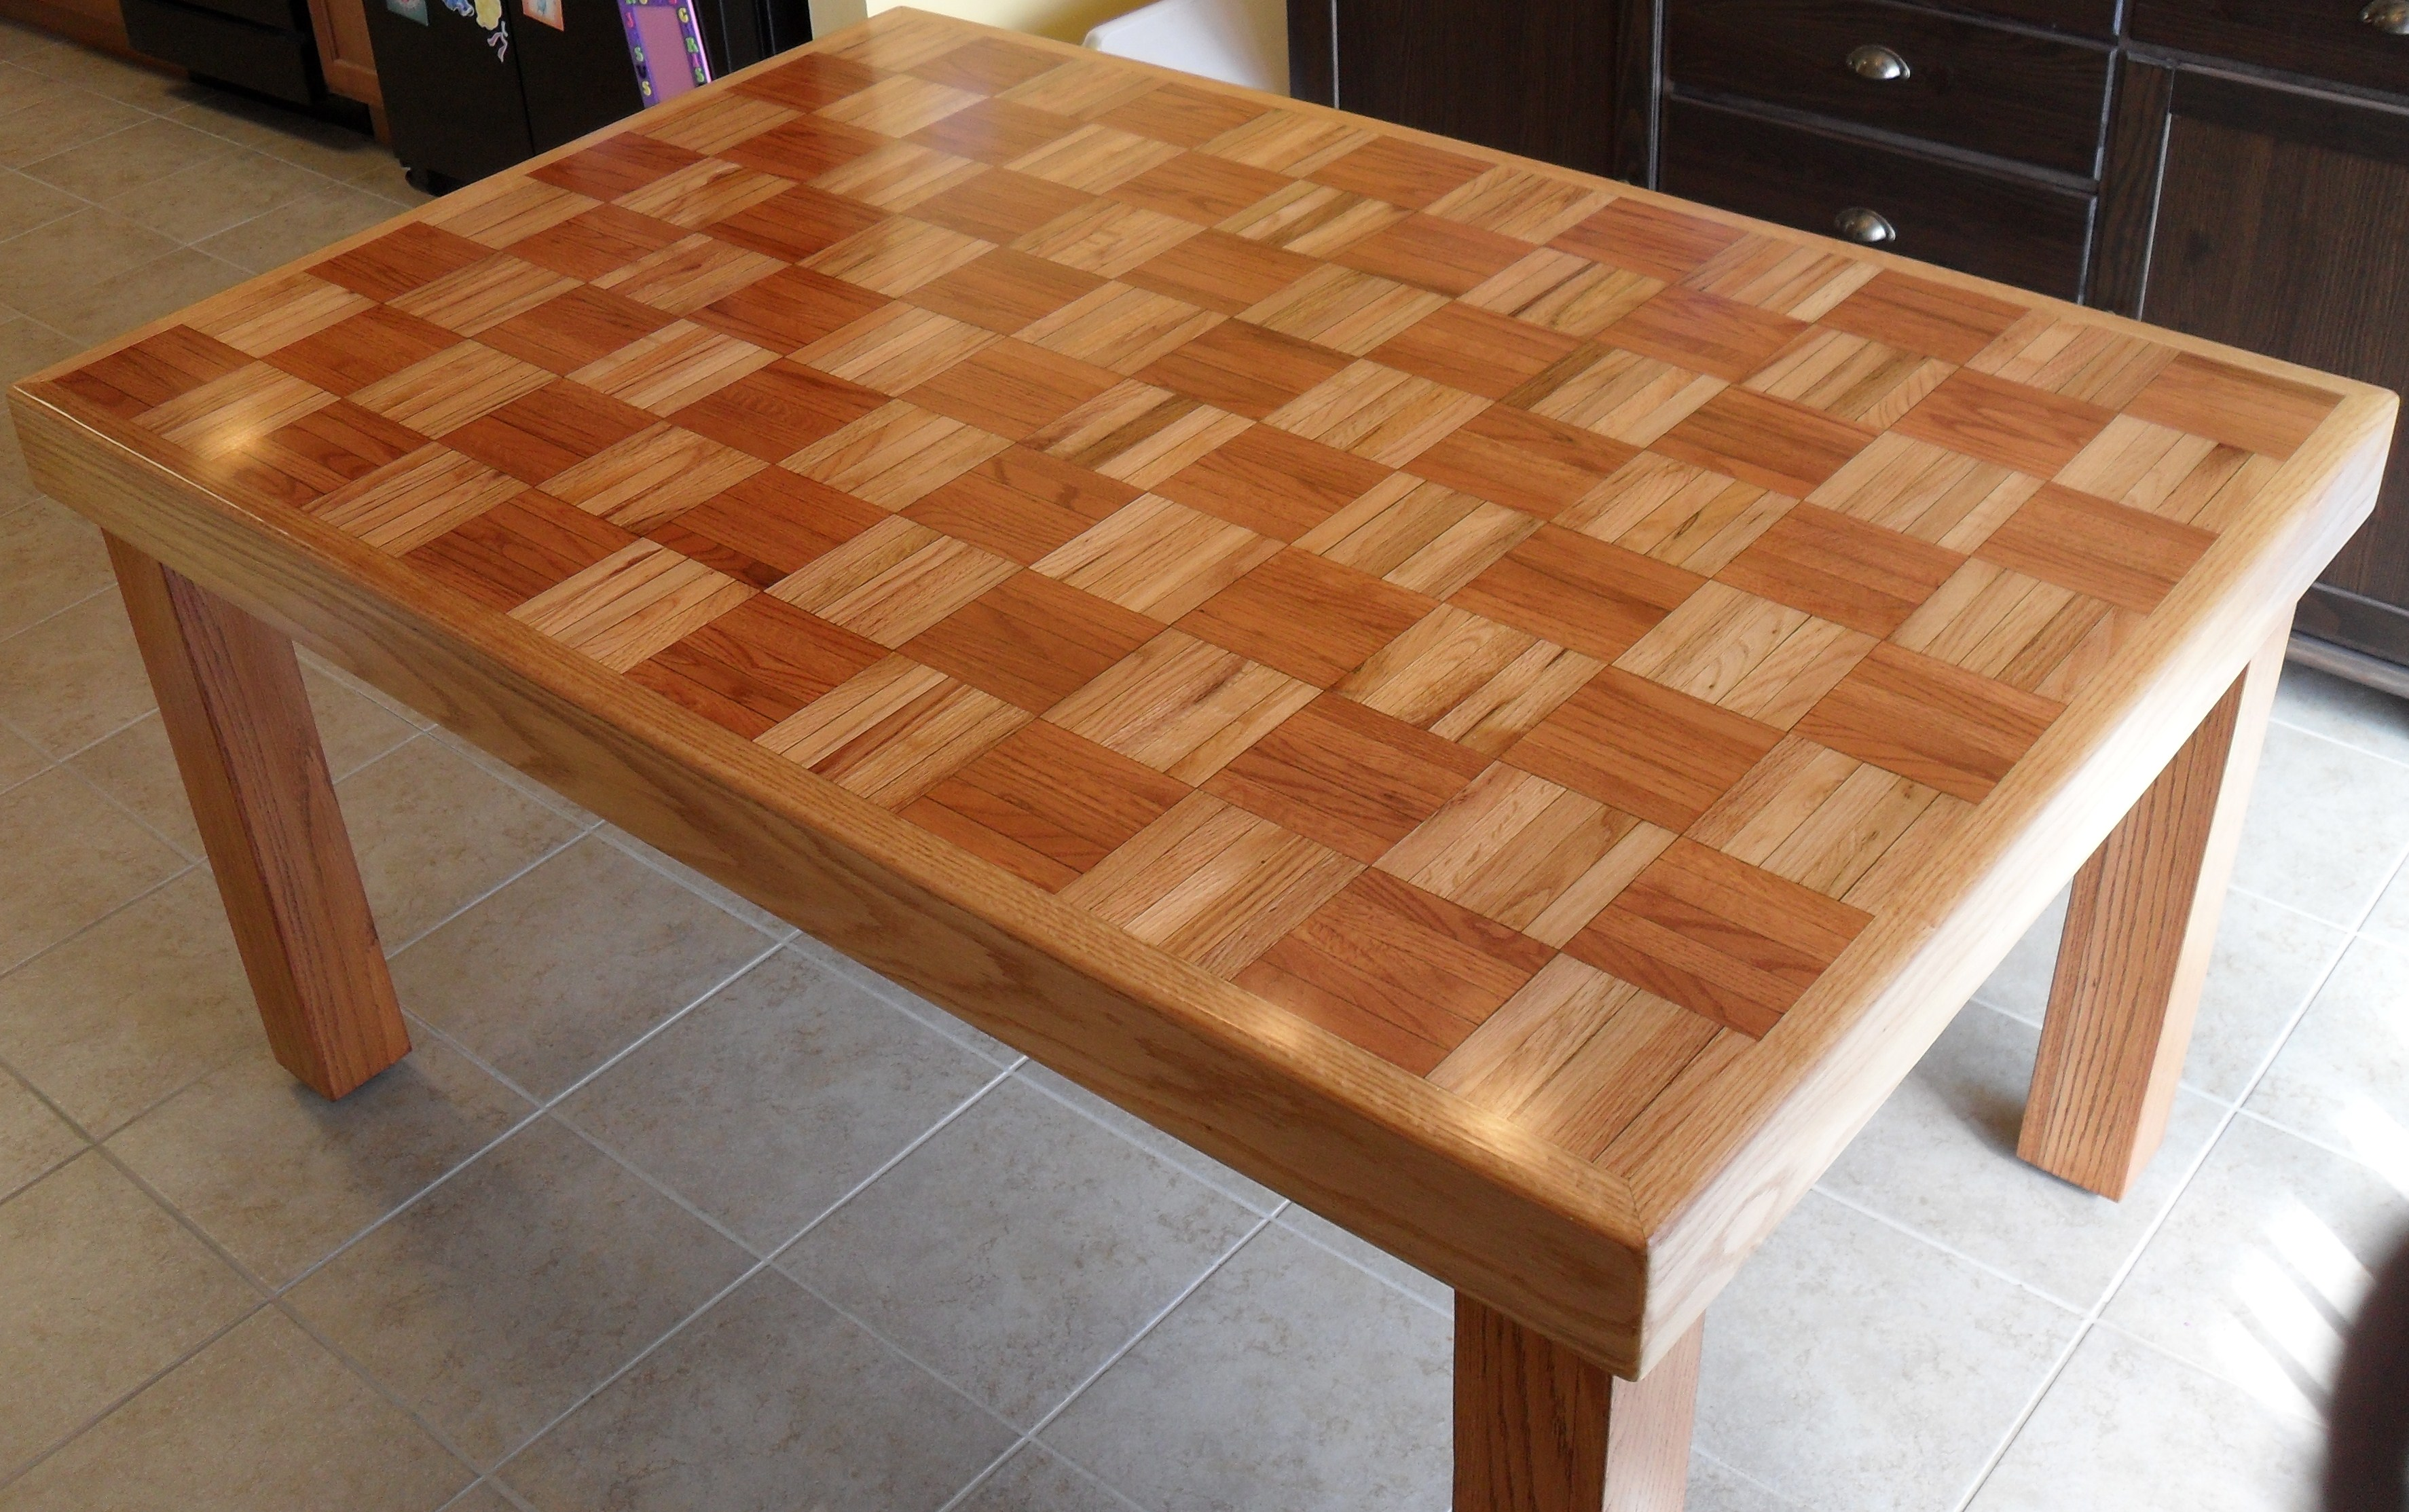 Family Made Table Refinishing #5 By Hearte42 On DeviantArt. Full resolution  portraiture, nominally Width 3548 Height 2227 pixels, portraiture with #7F4320.